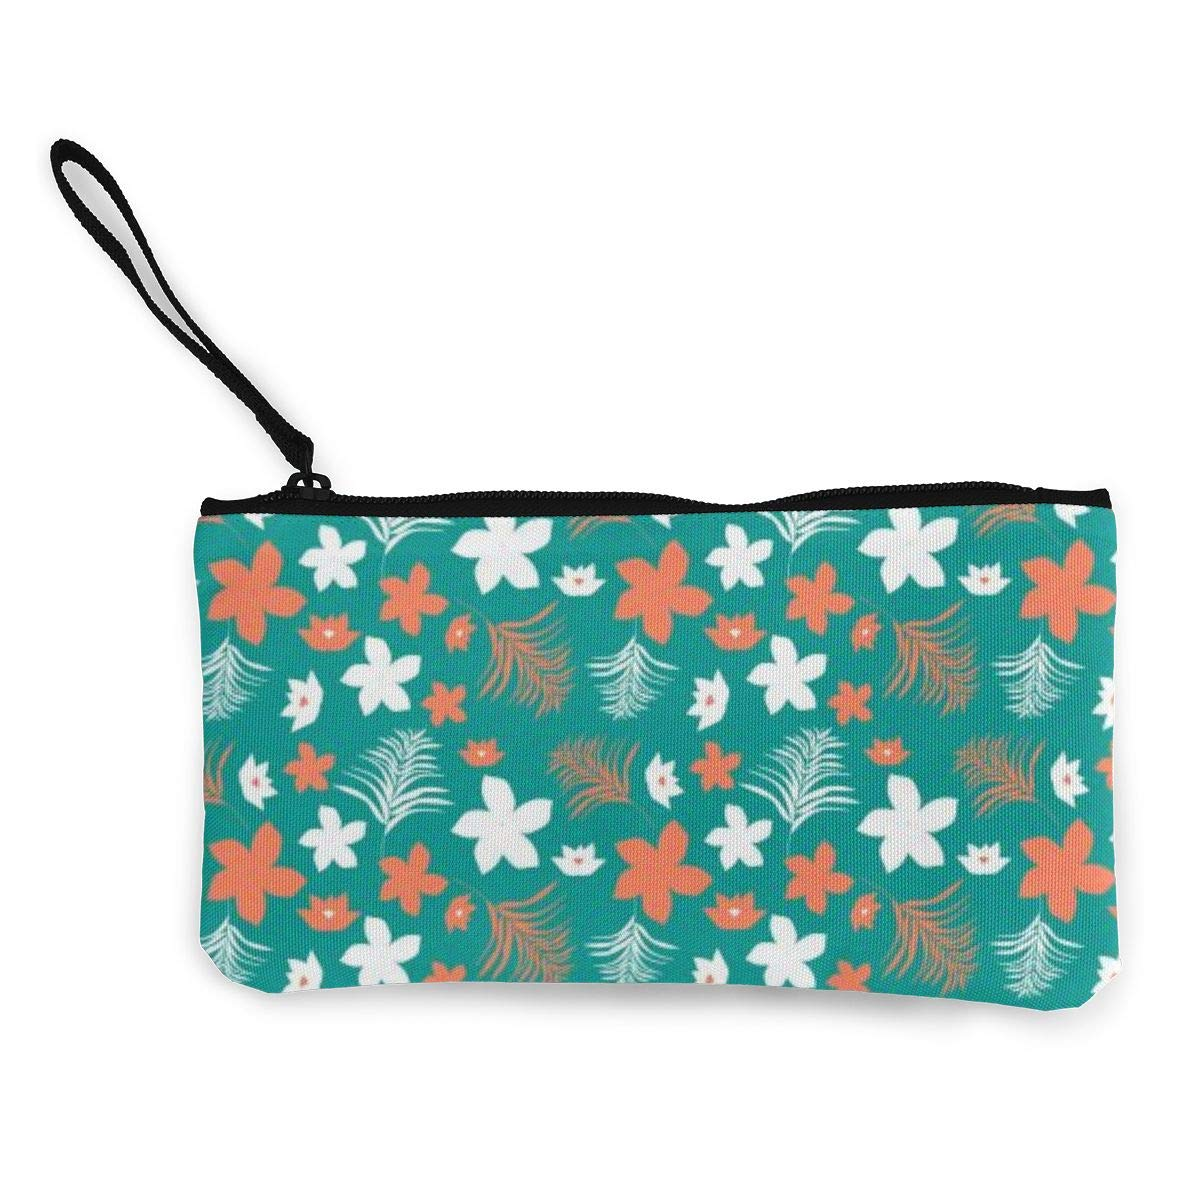 Coin Pouch Pacific Florals Canvas Coin Purse Cellphone Card Bag With Handle And Zipper